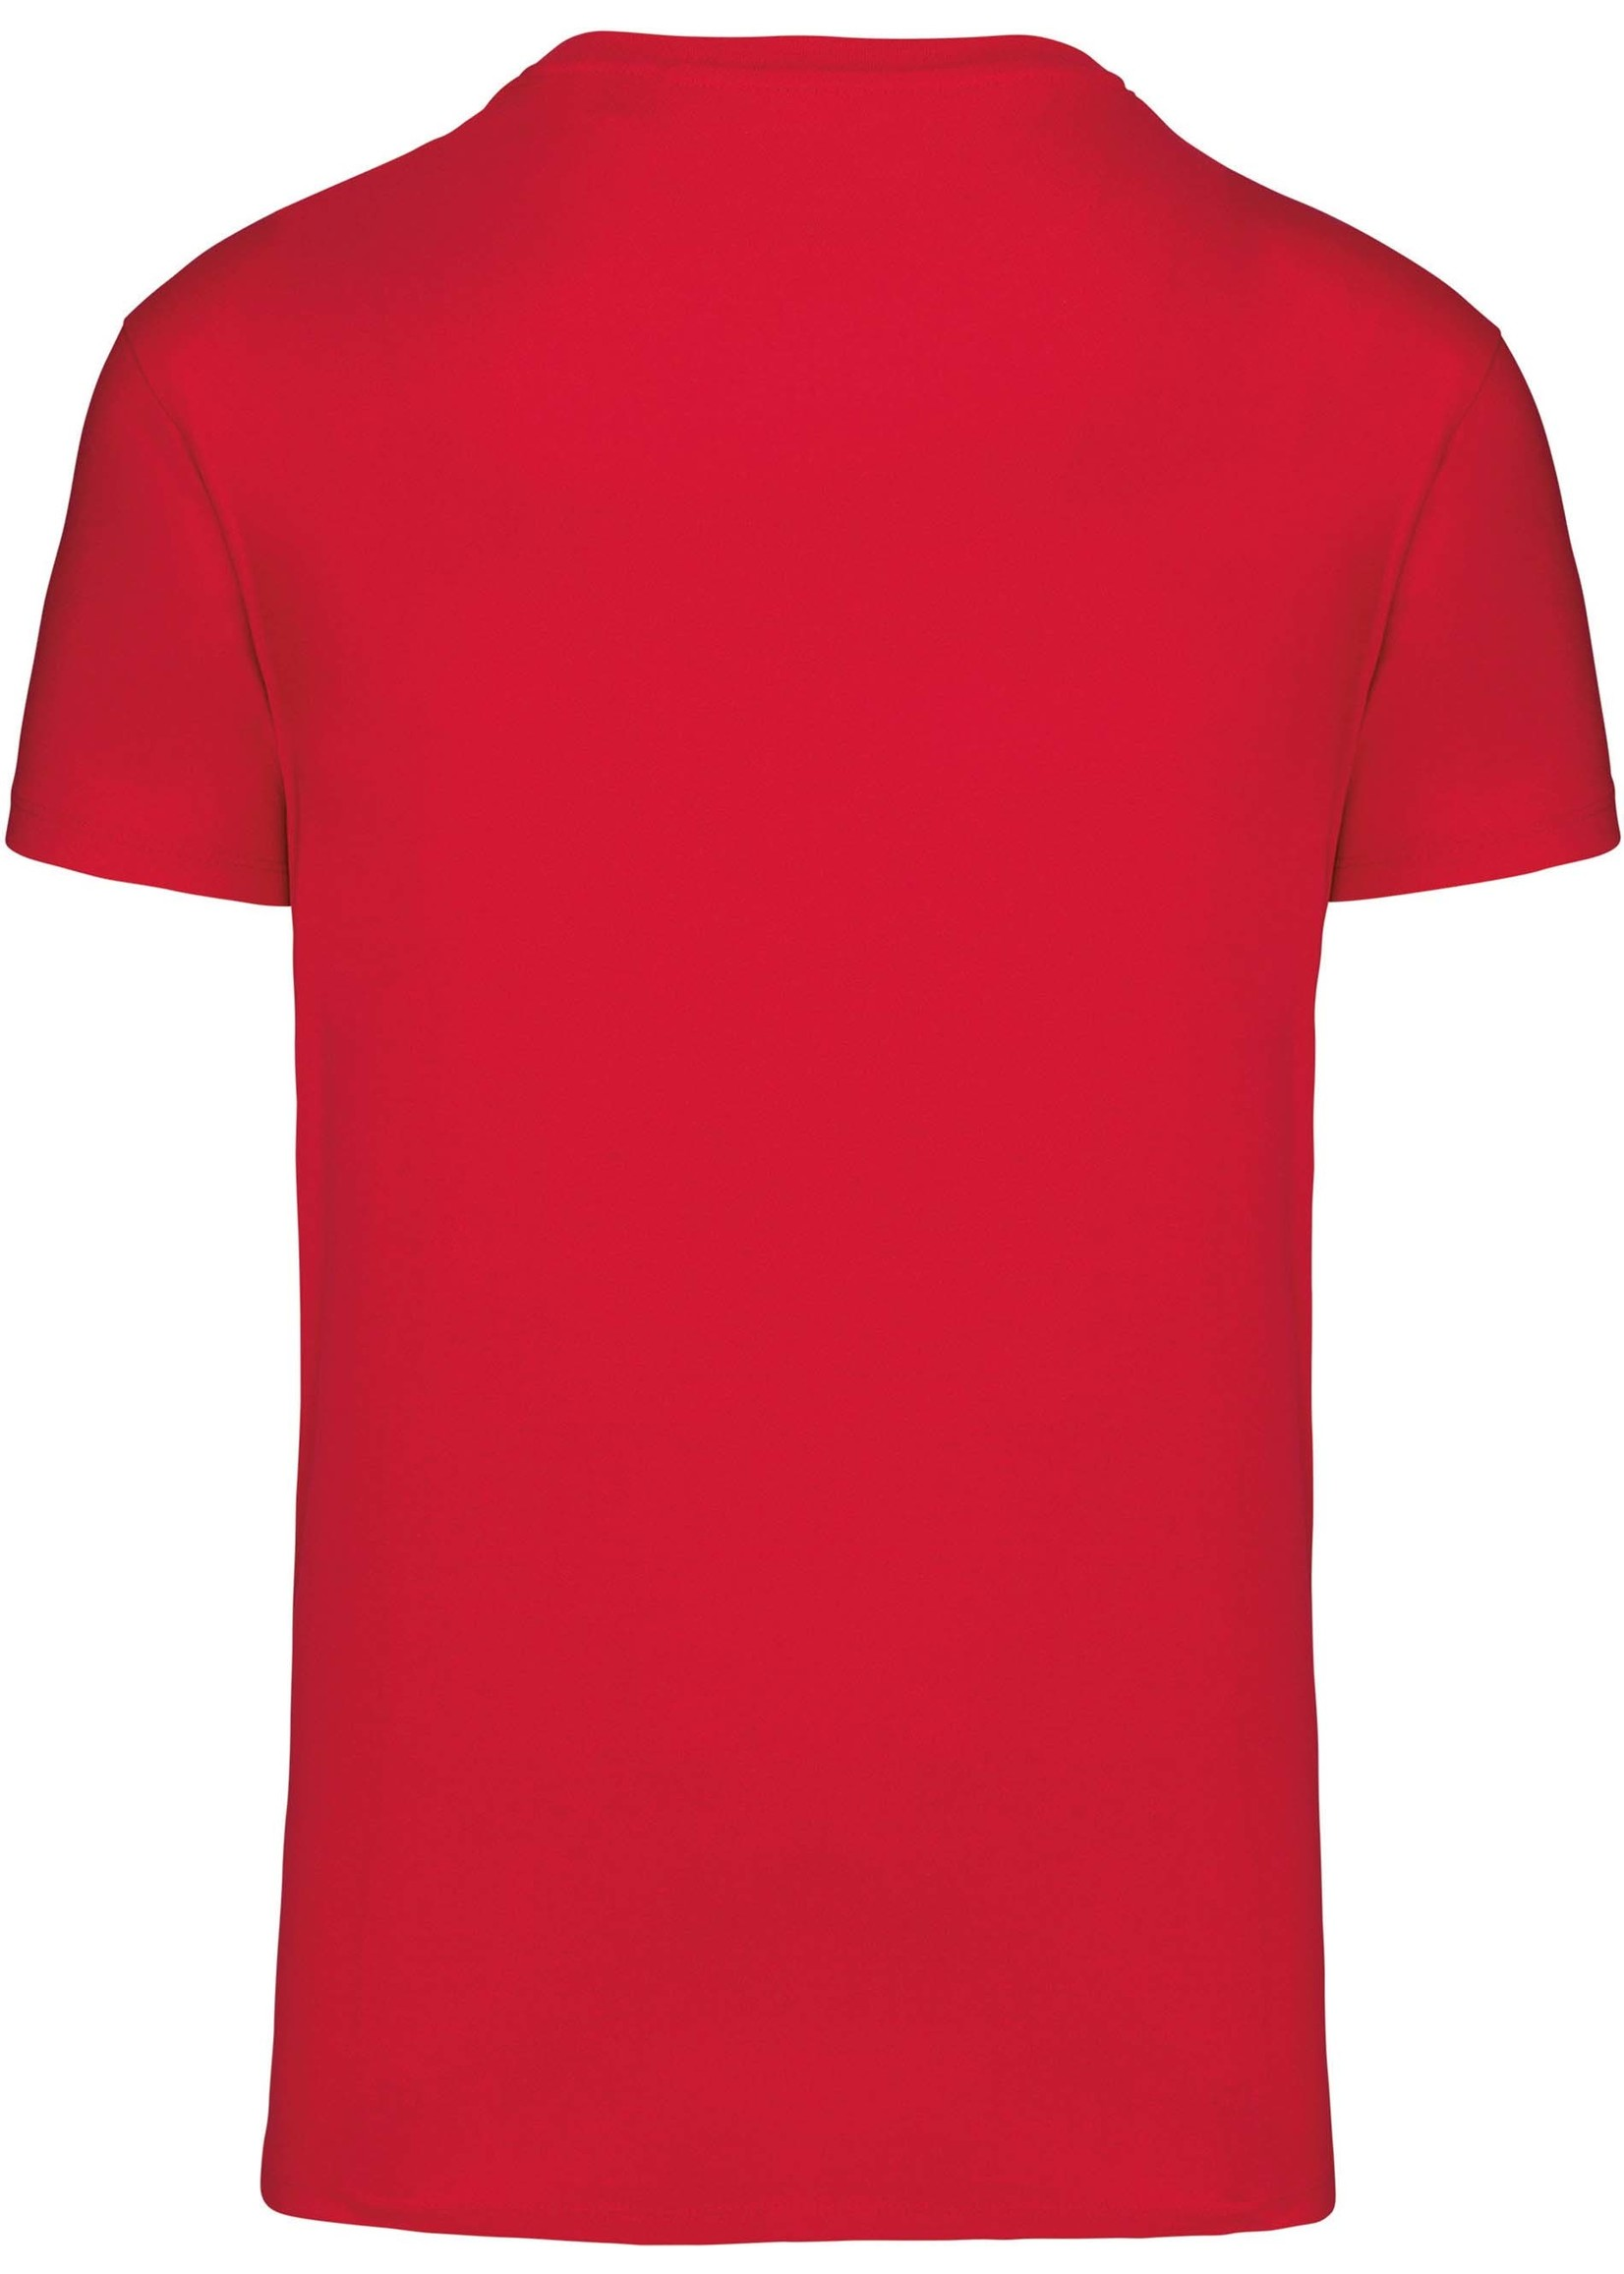 Eco-Friendly Unisex T-shirt - Red